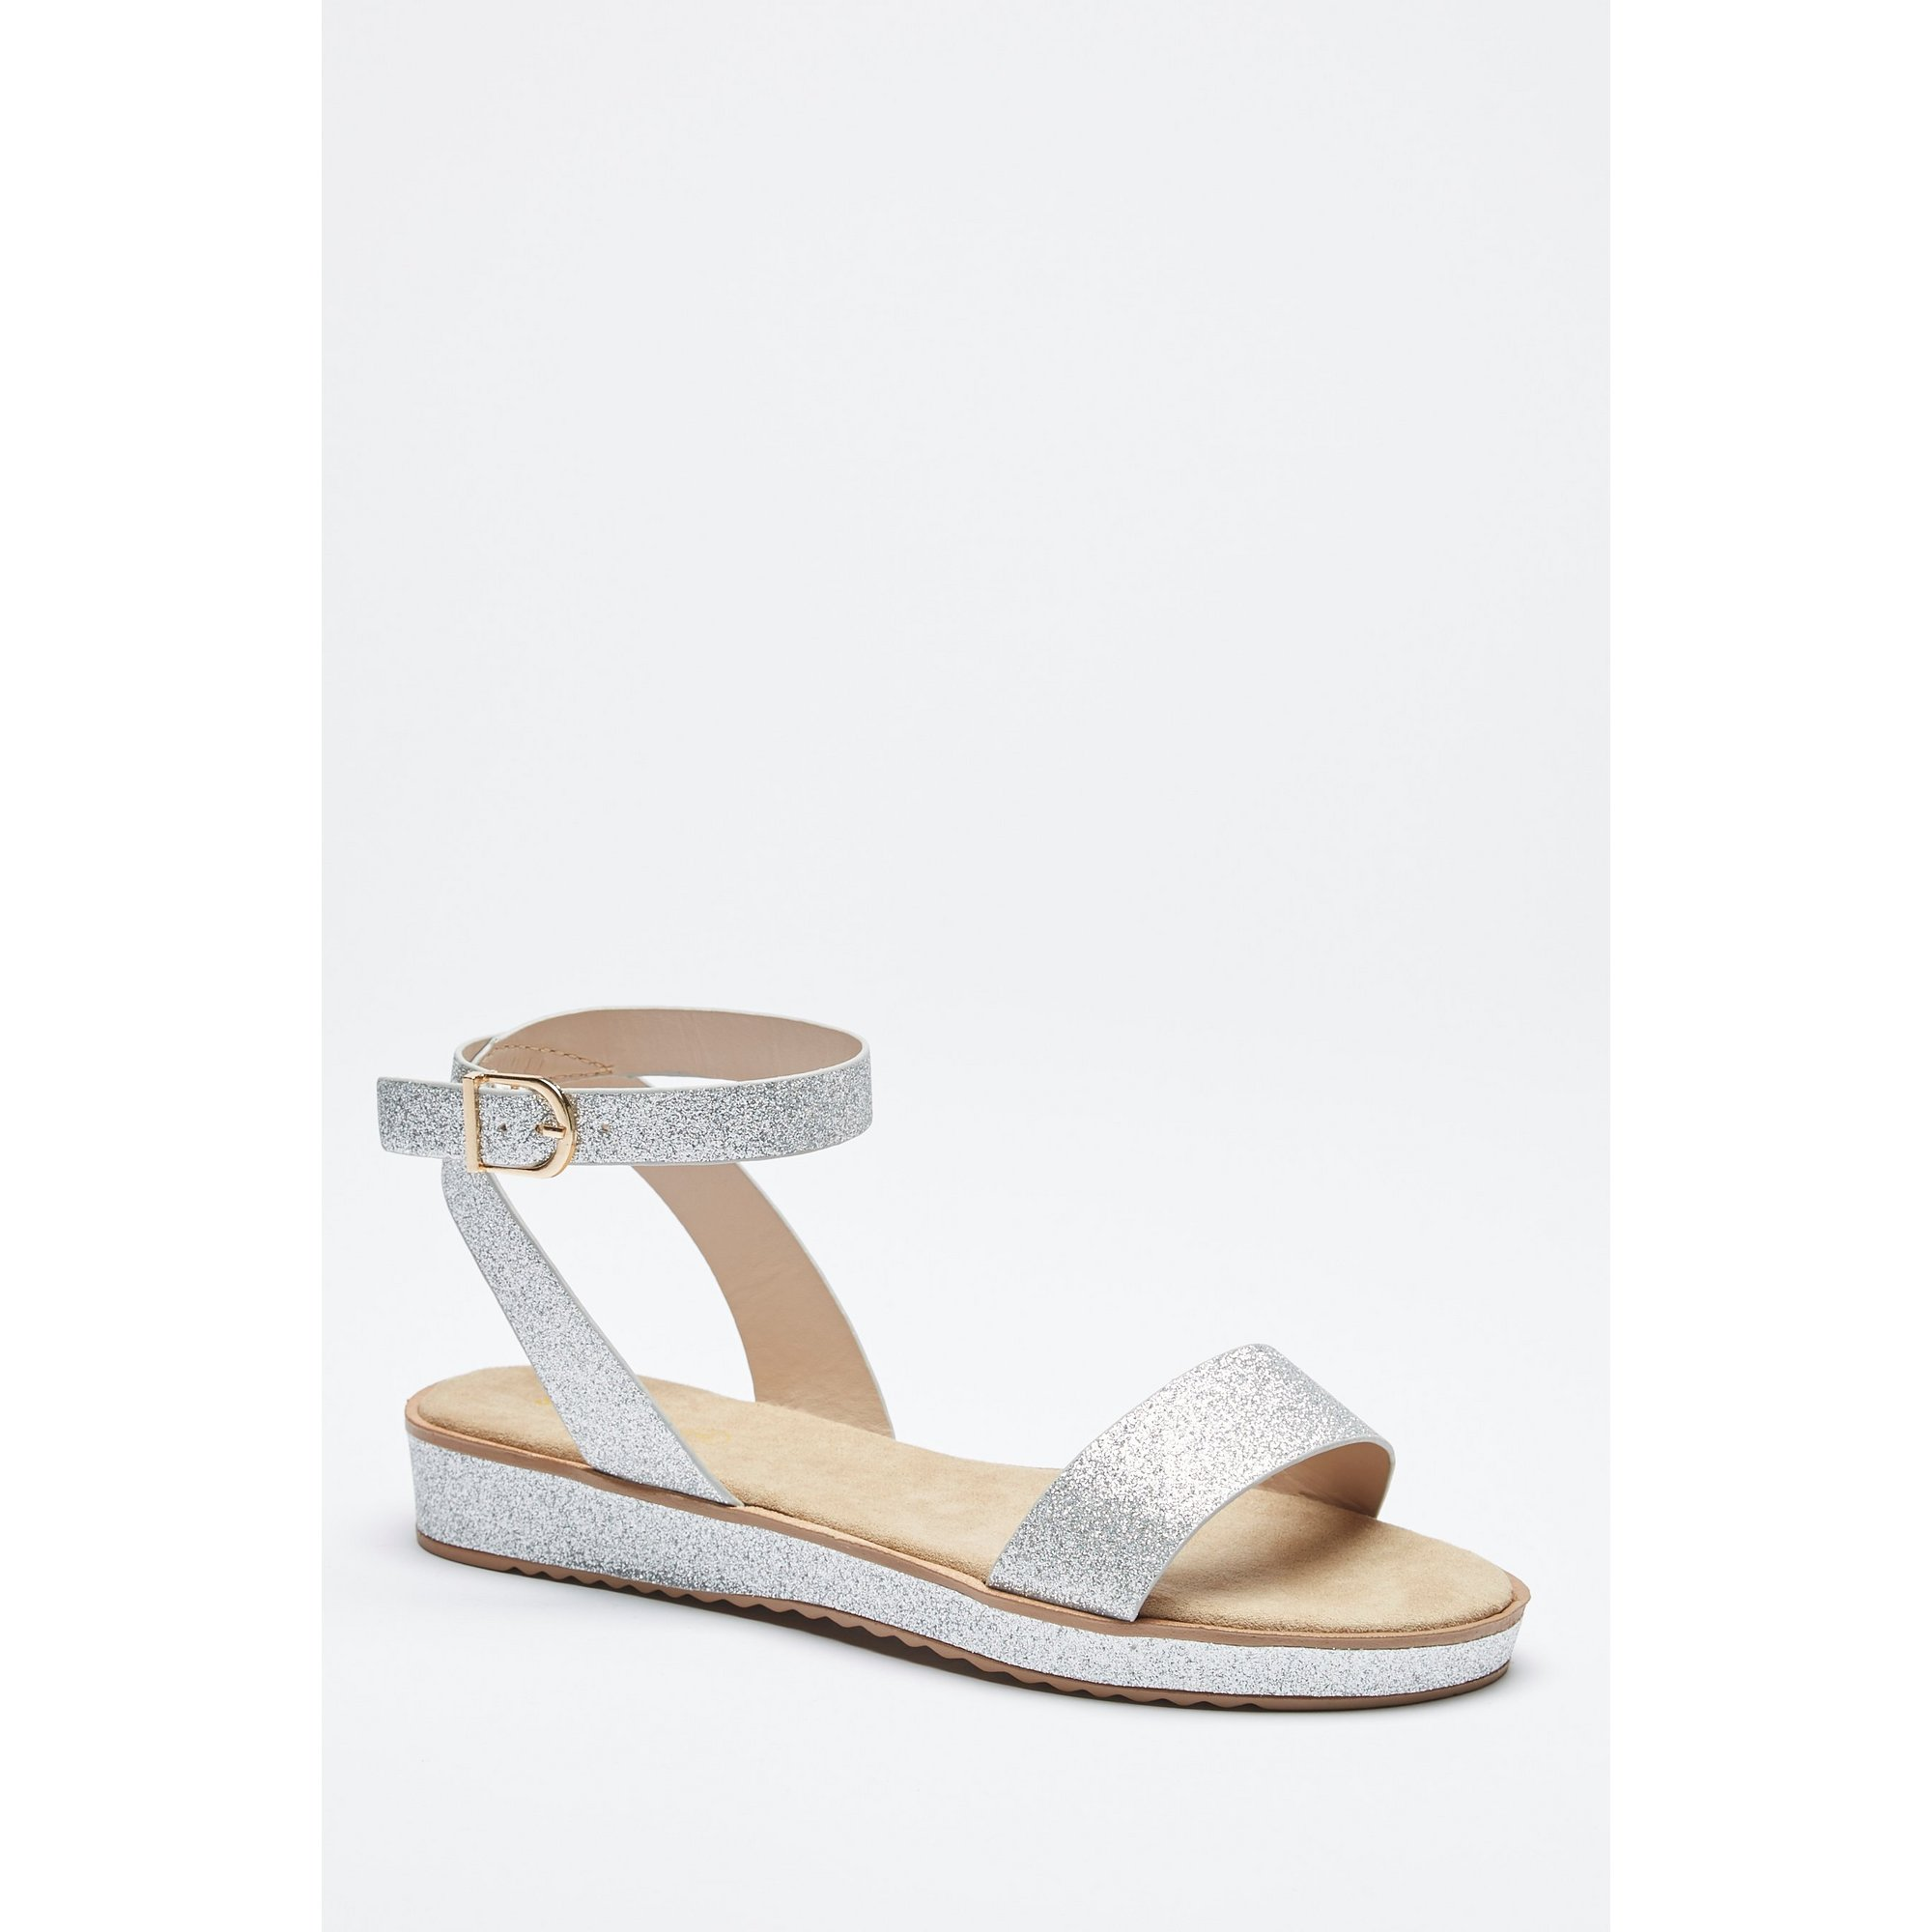 Image of 2-Part Footbed Sandals